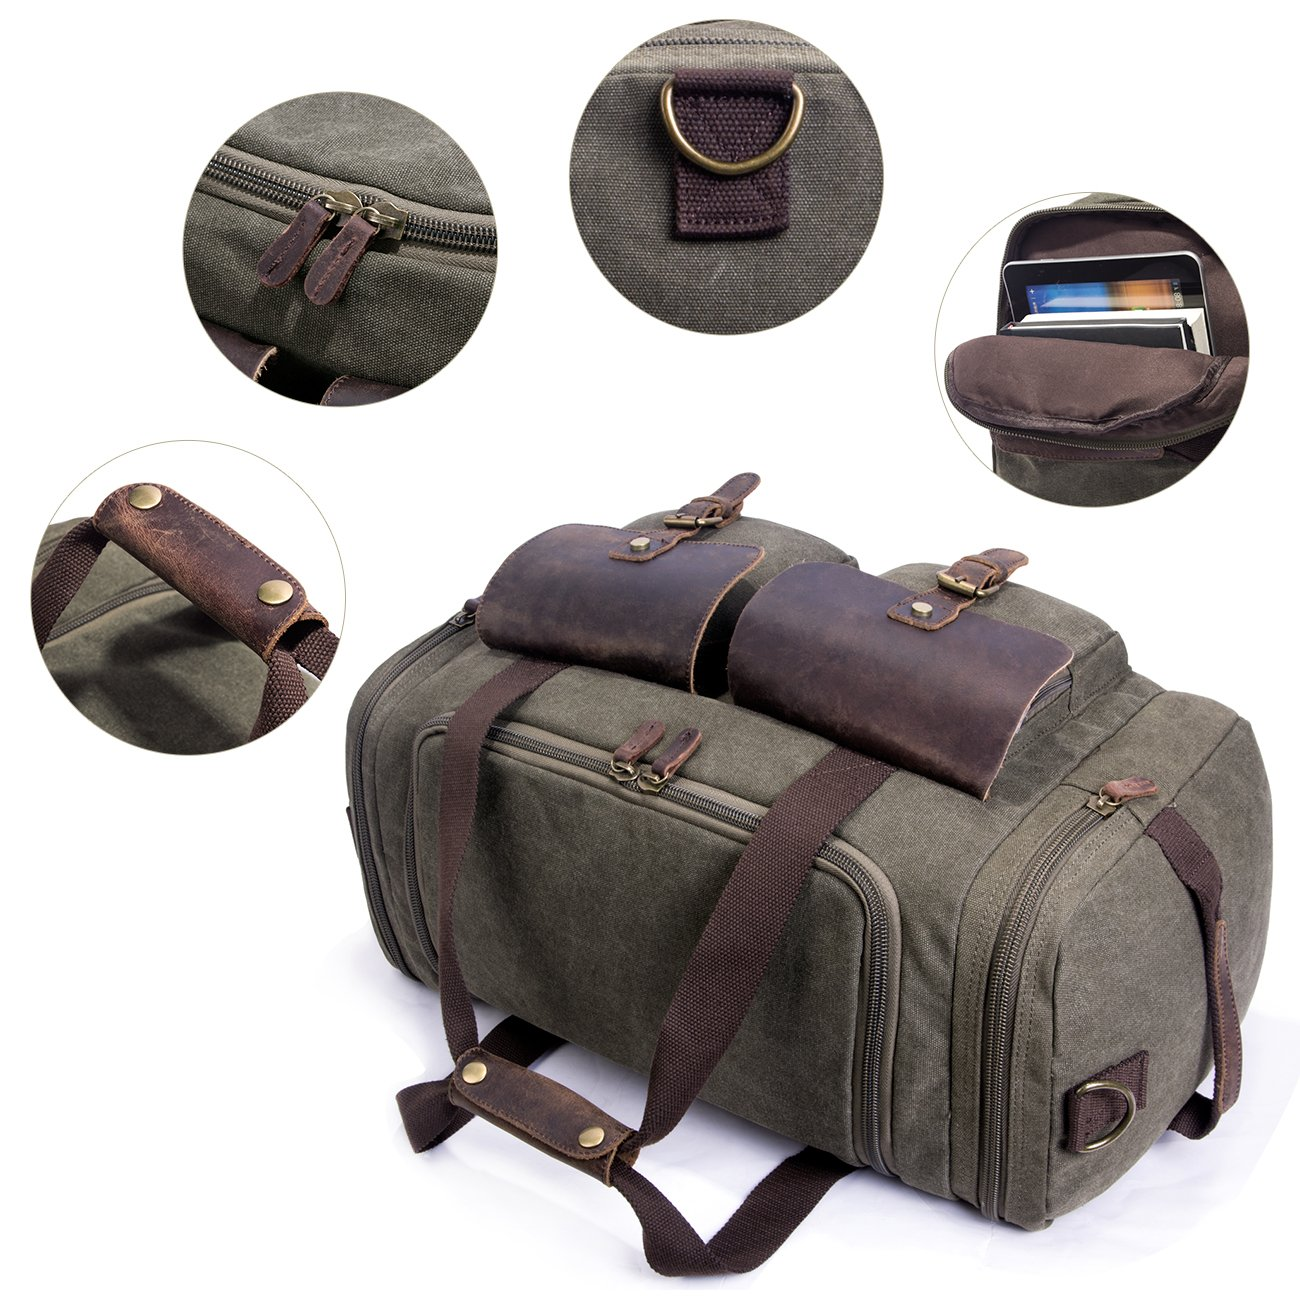 SUVOM Canvas Duffle Bag Leather Weekend Bag Carry On Travel Bag Luggage Oversized Holdalls for Men and Women(Army Green) by SUVOM (Image #3)